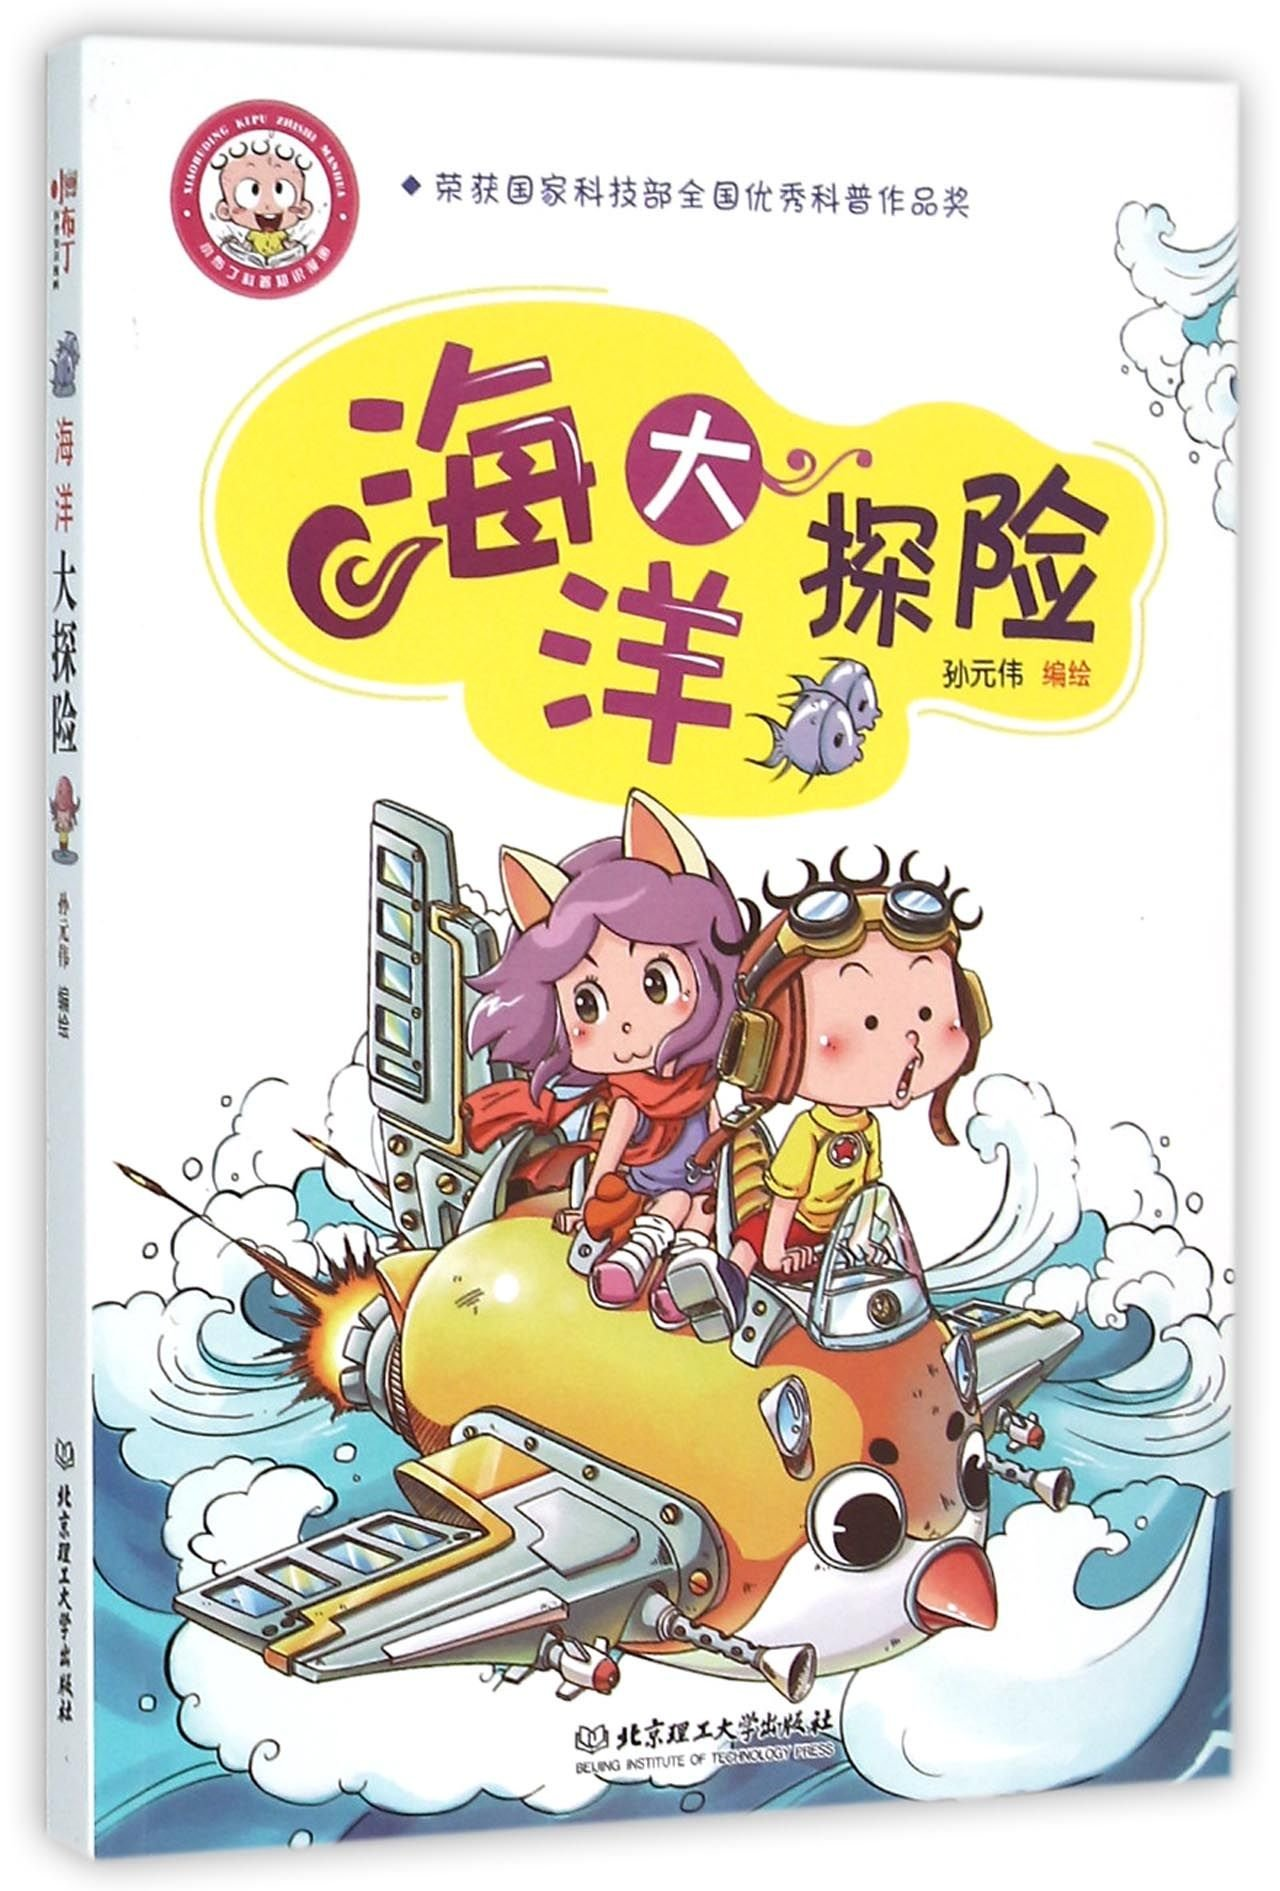 Download Adventure in the Ocean (Little Pudding Popular Science Cartoon) (Chinese Edition) pdf epub